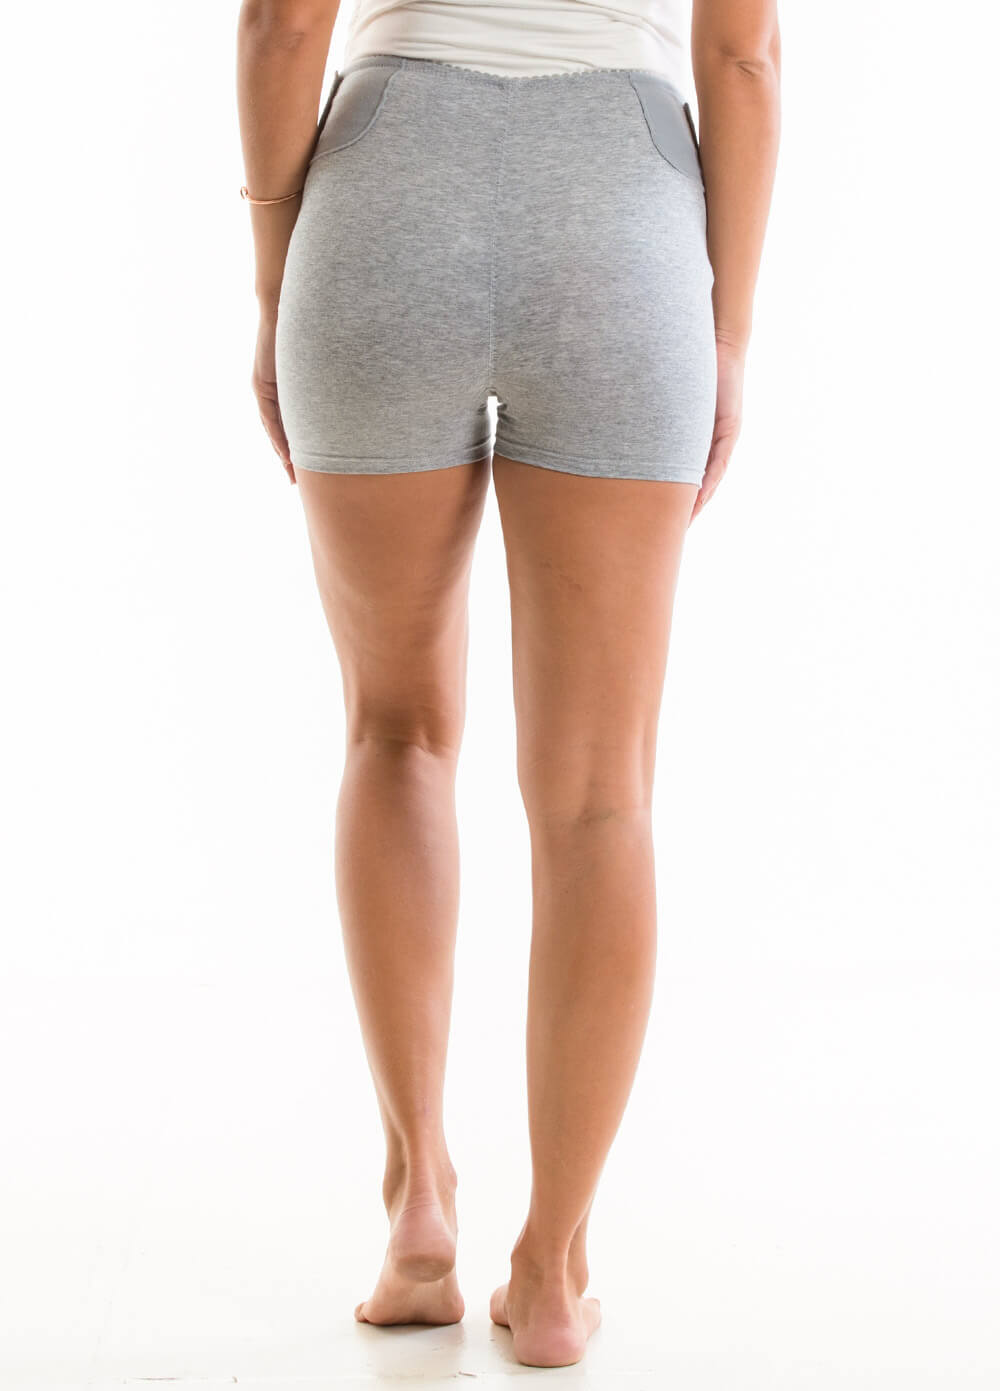 Tiana Adjustable Pregnancy Support Shorts in Grey by Queen Bee